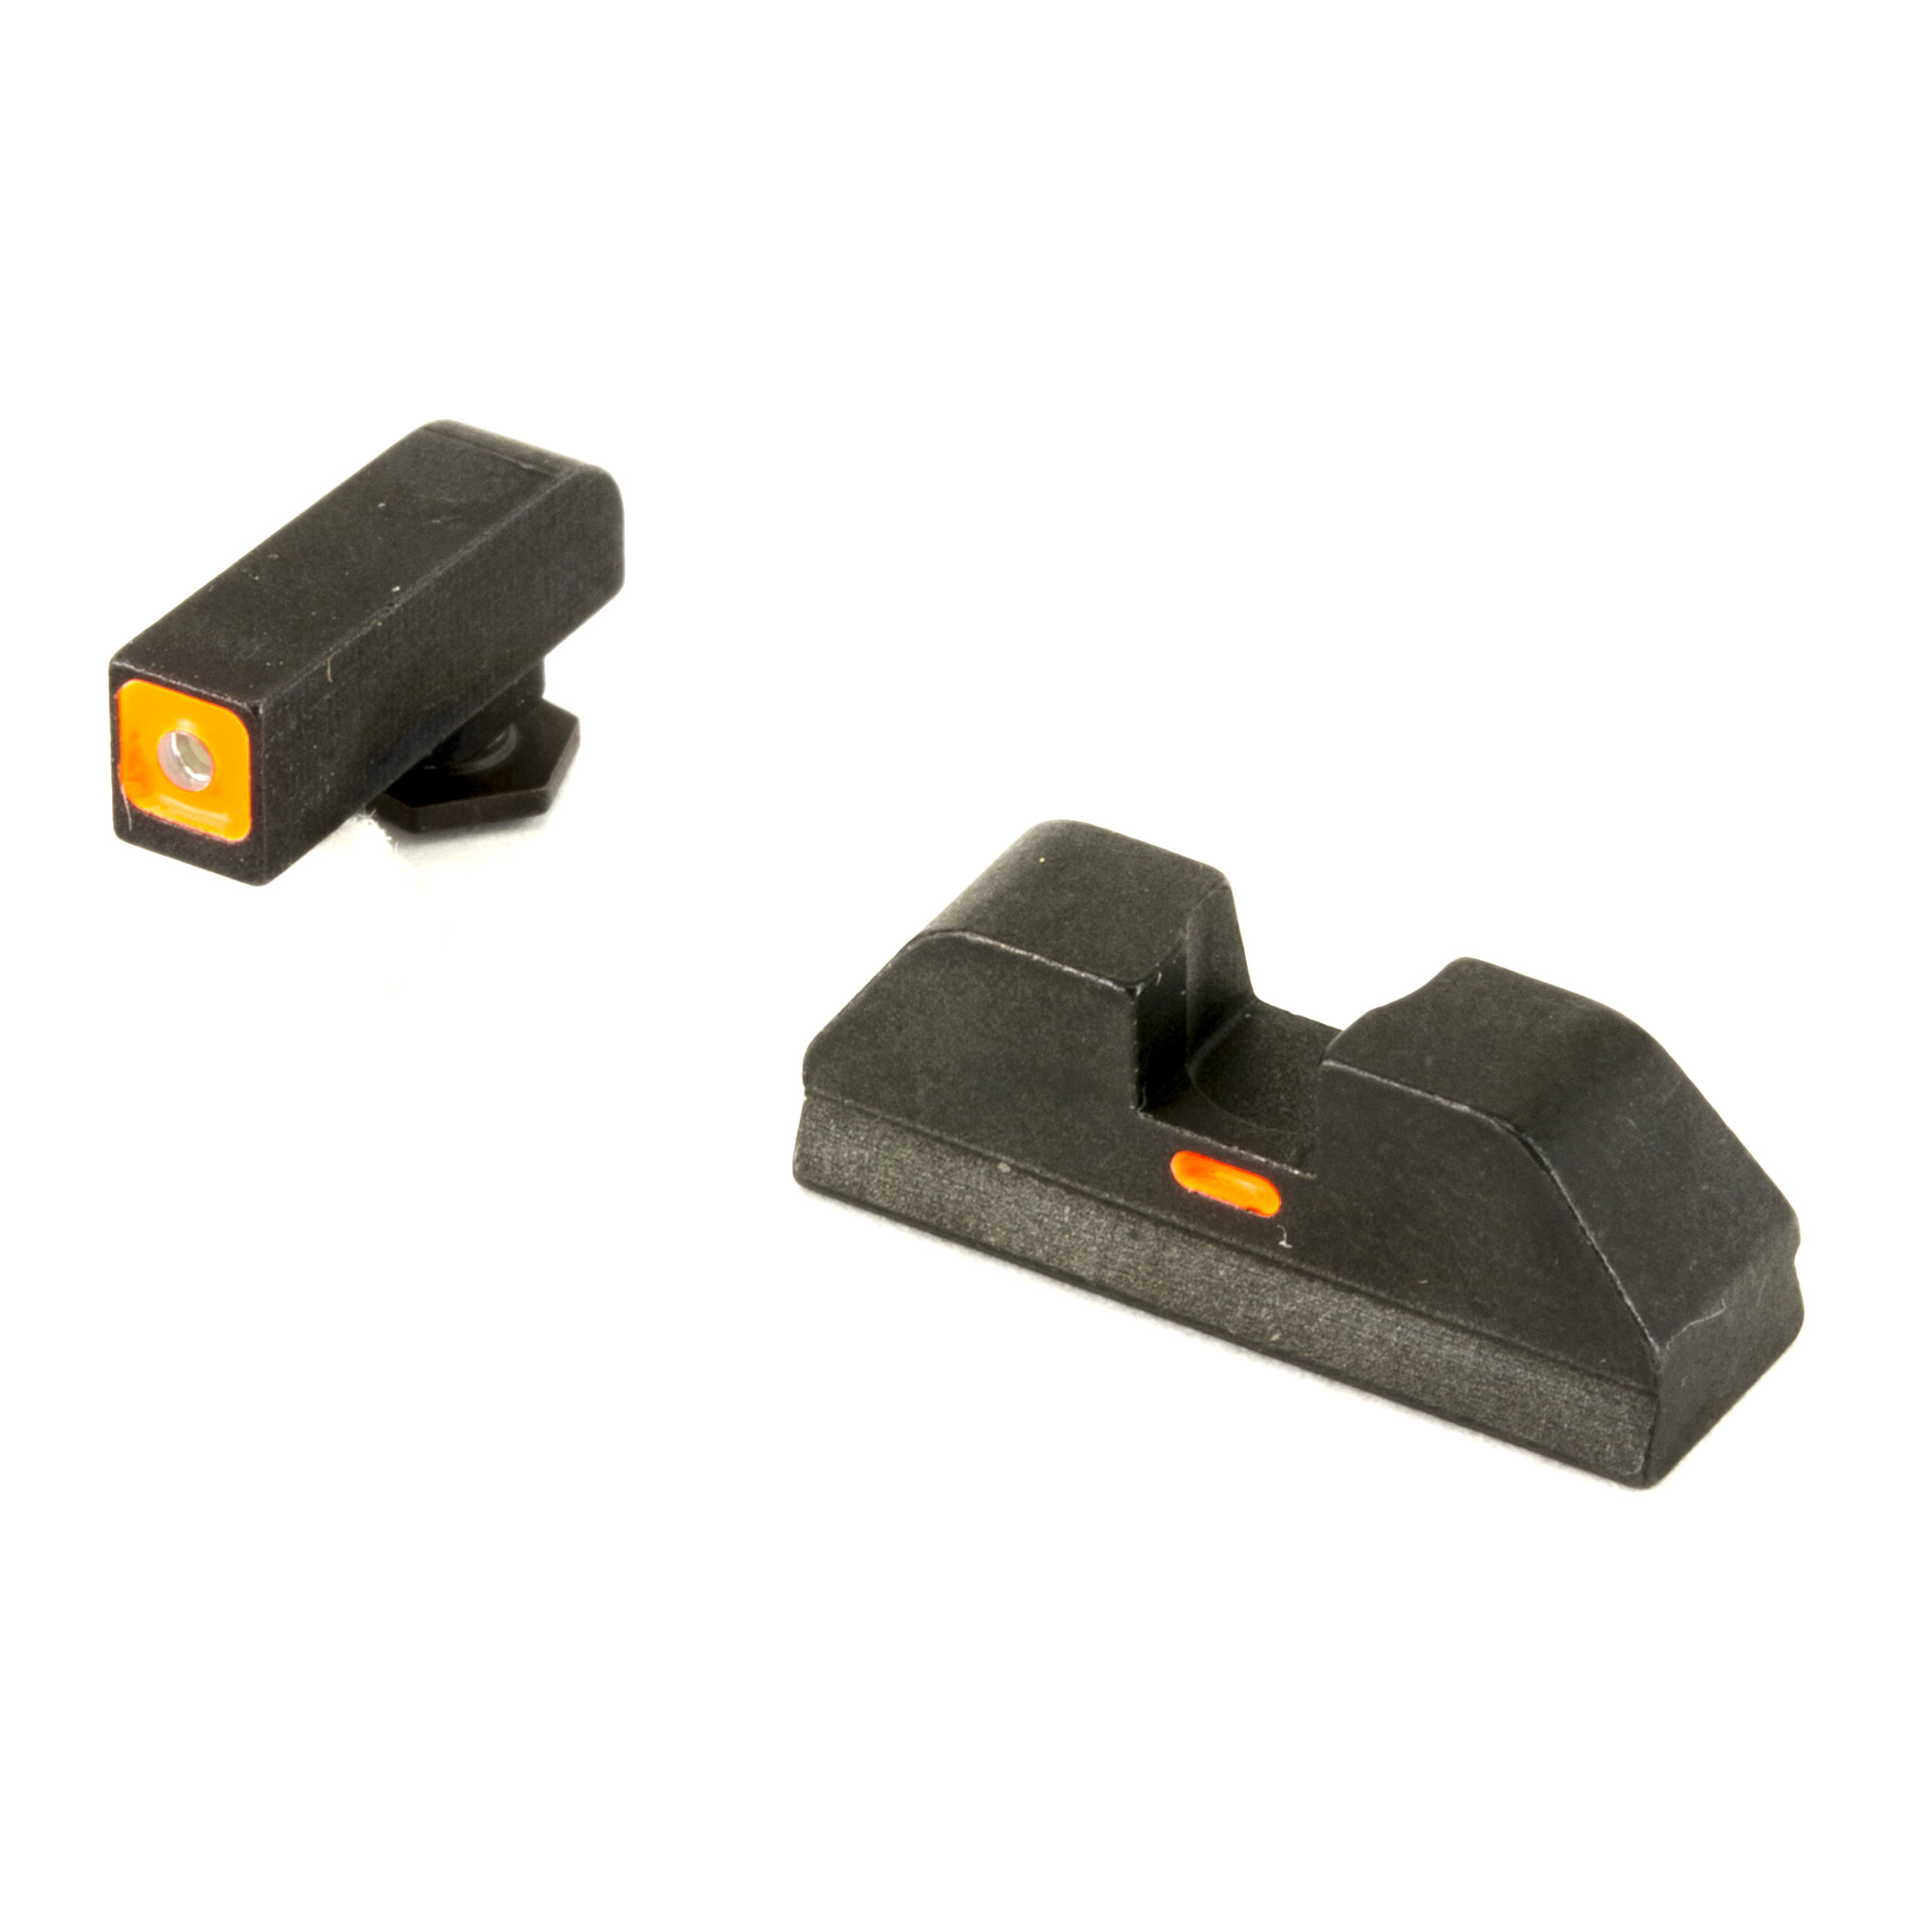 """AmeriGlo CAP (Combat Application Pistol) sets allow the shooter to align a highly visible front post with a brightly colored horizontal paint bar on the rear sight for rapid target acquisition. Point of impact is the A-Box at 15 yards when any portion of the front sight is visible in the rear notch"""" allowing for rapid sight alignment."""